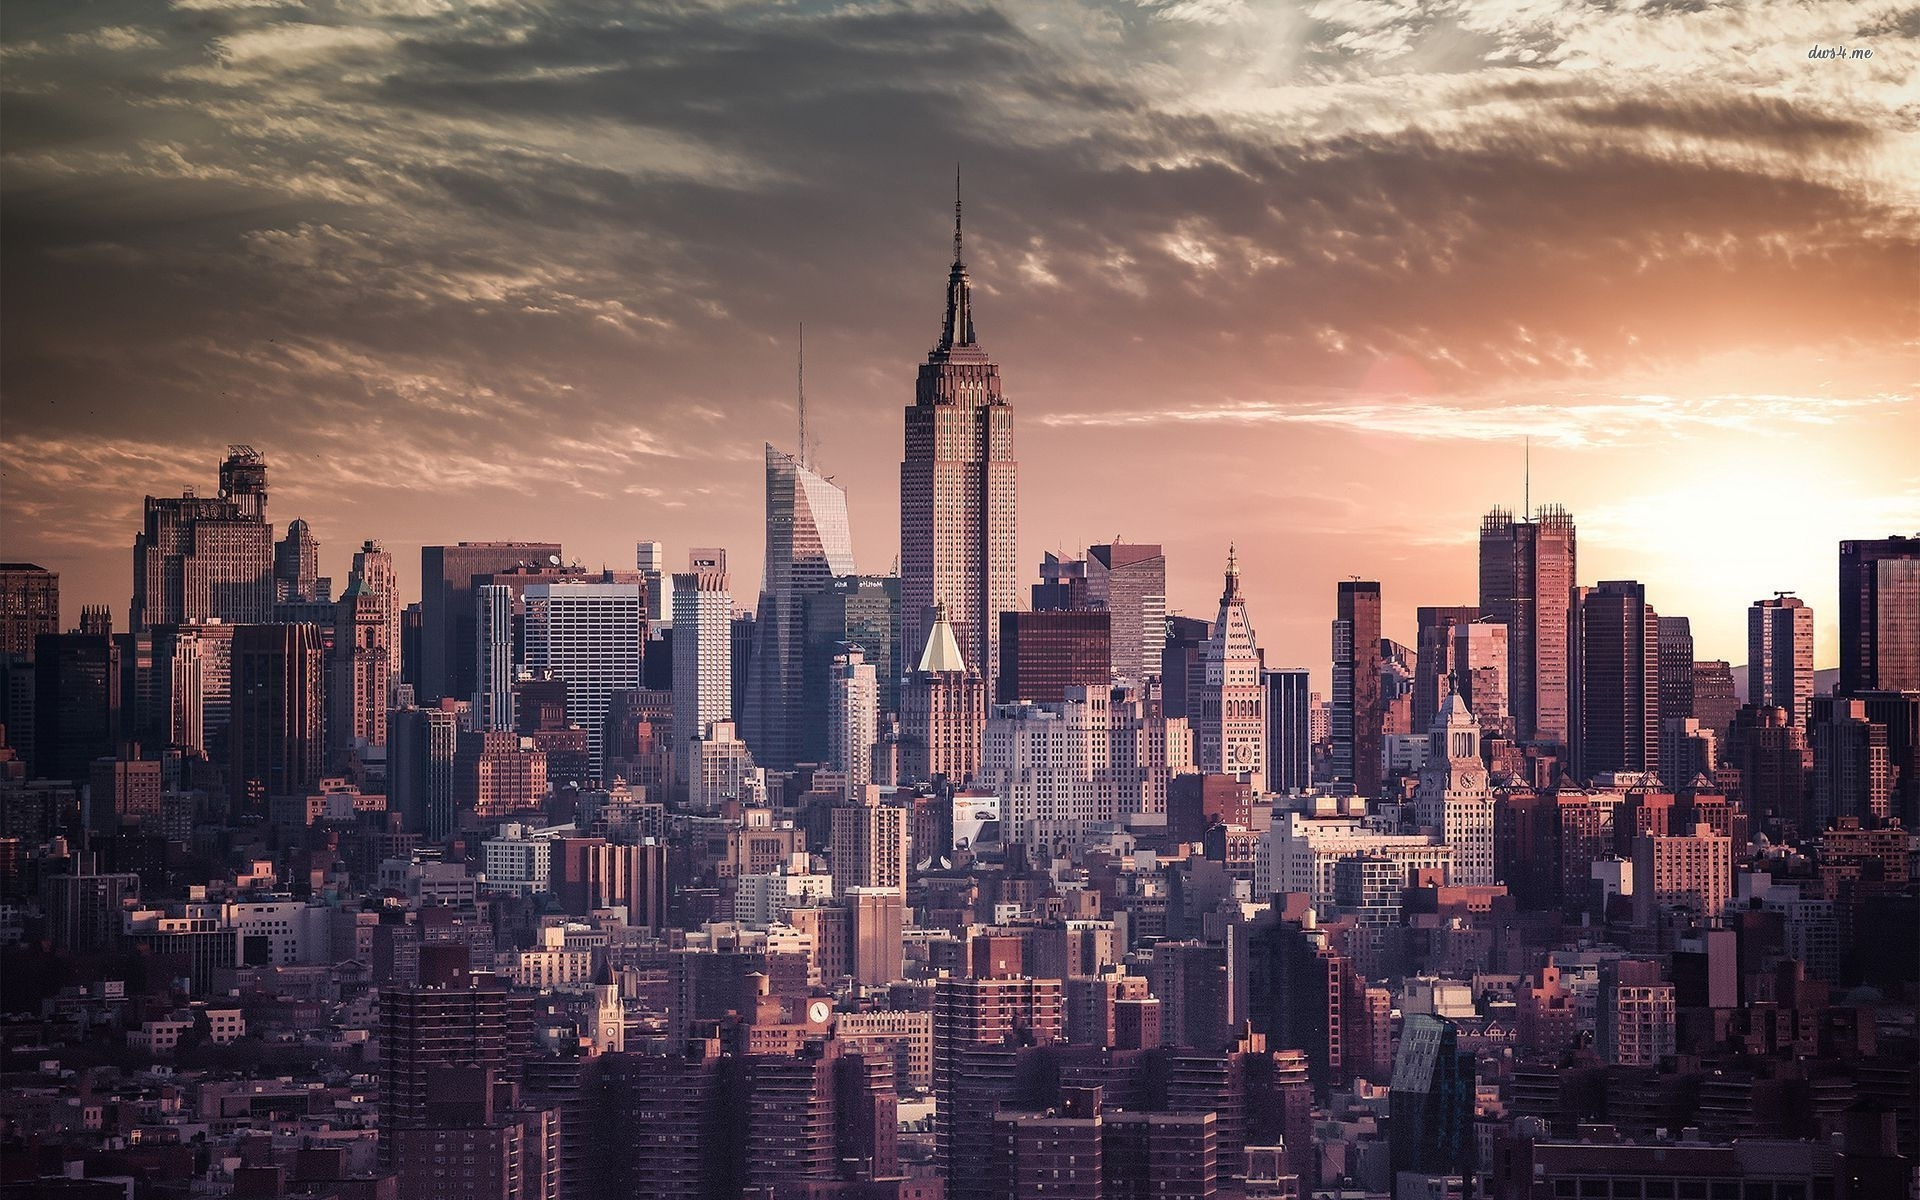 new york city wallpapers, 34 best hd images of new york city, hd